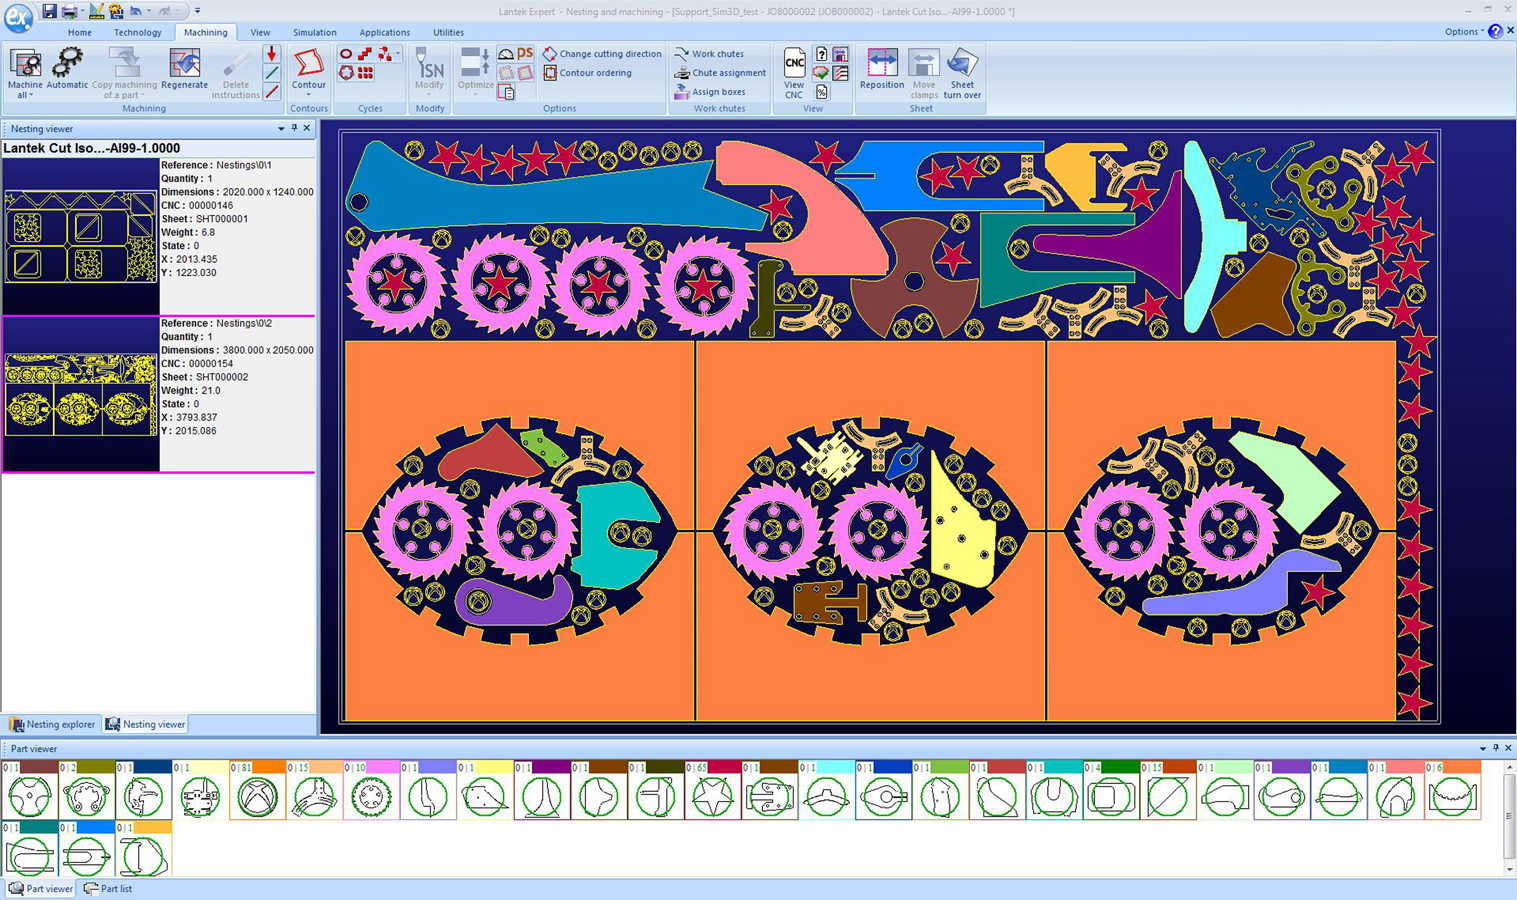 World Machinery Announces Partnership With Cad Cam